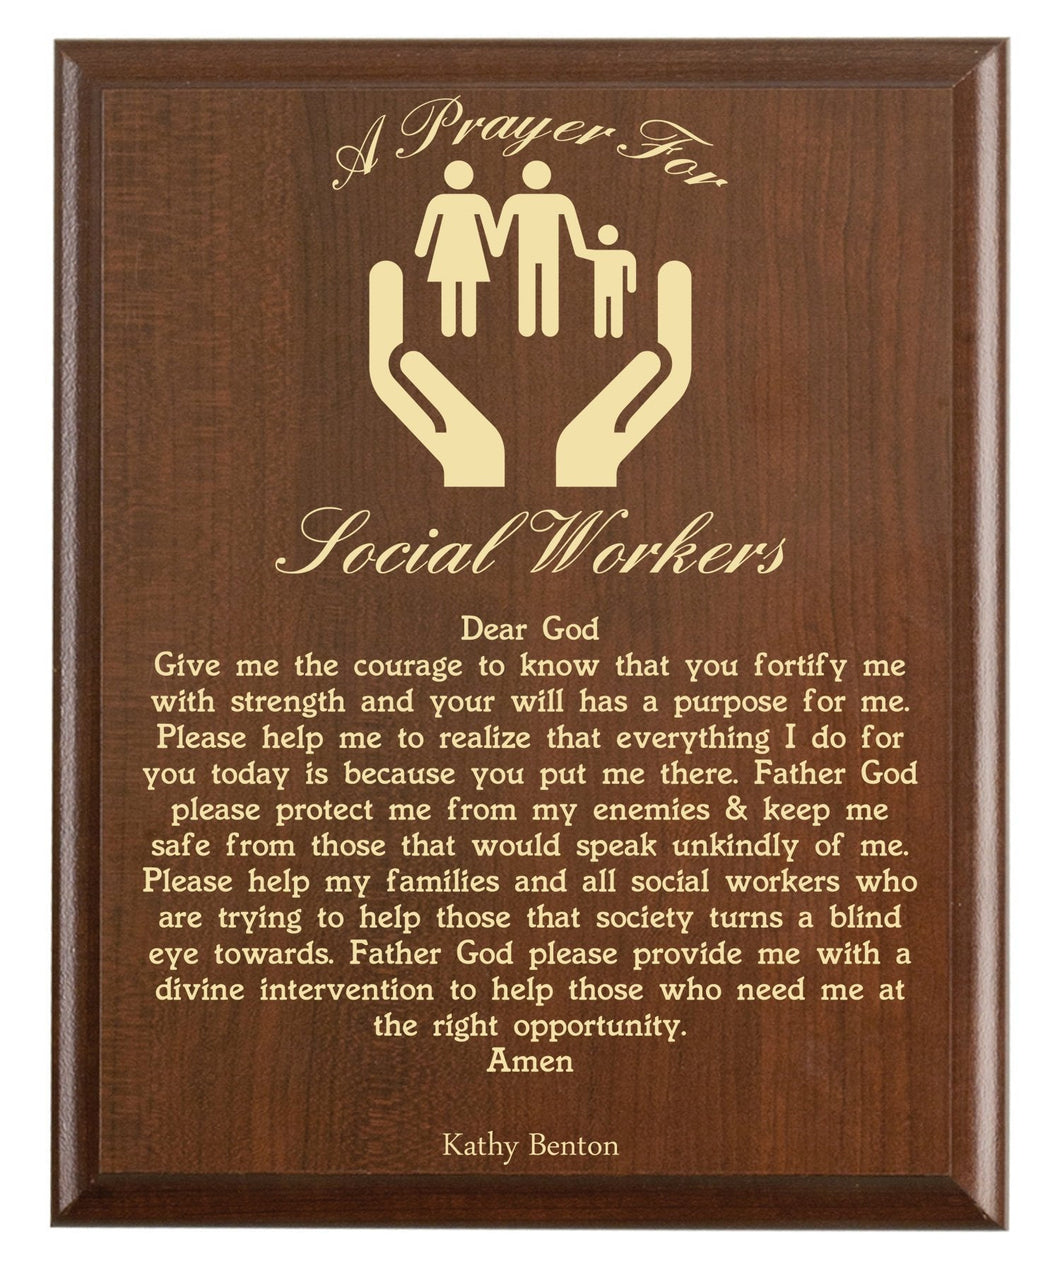 Christian prayer for a social worker with industry logo and free personalization. Cherry finish with laser engraved text.